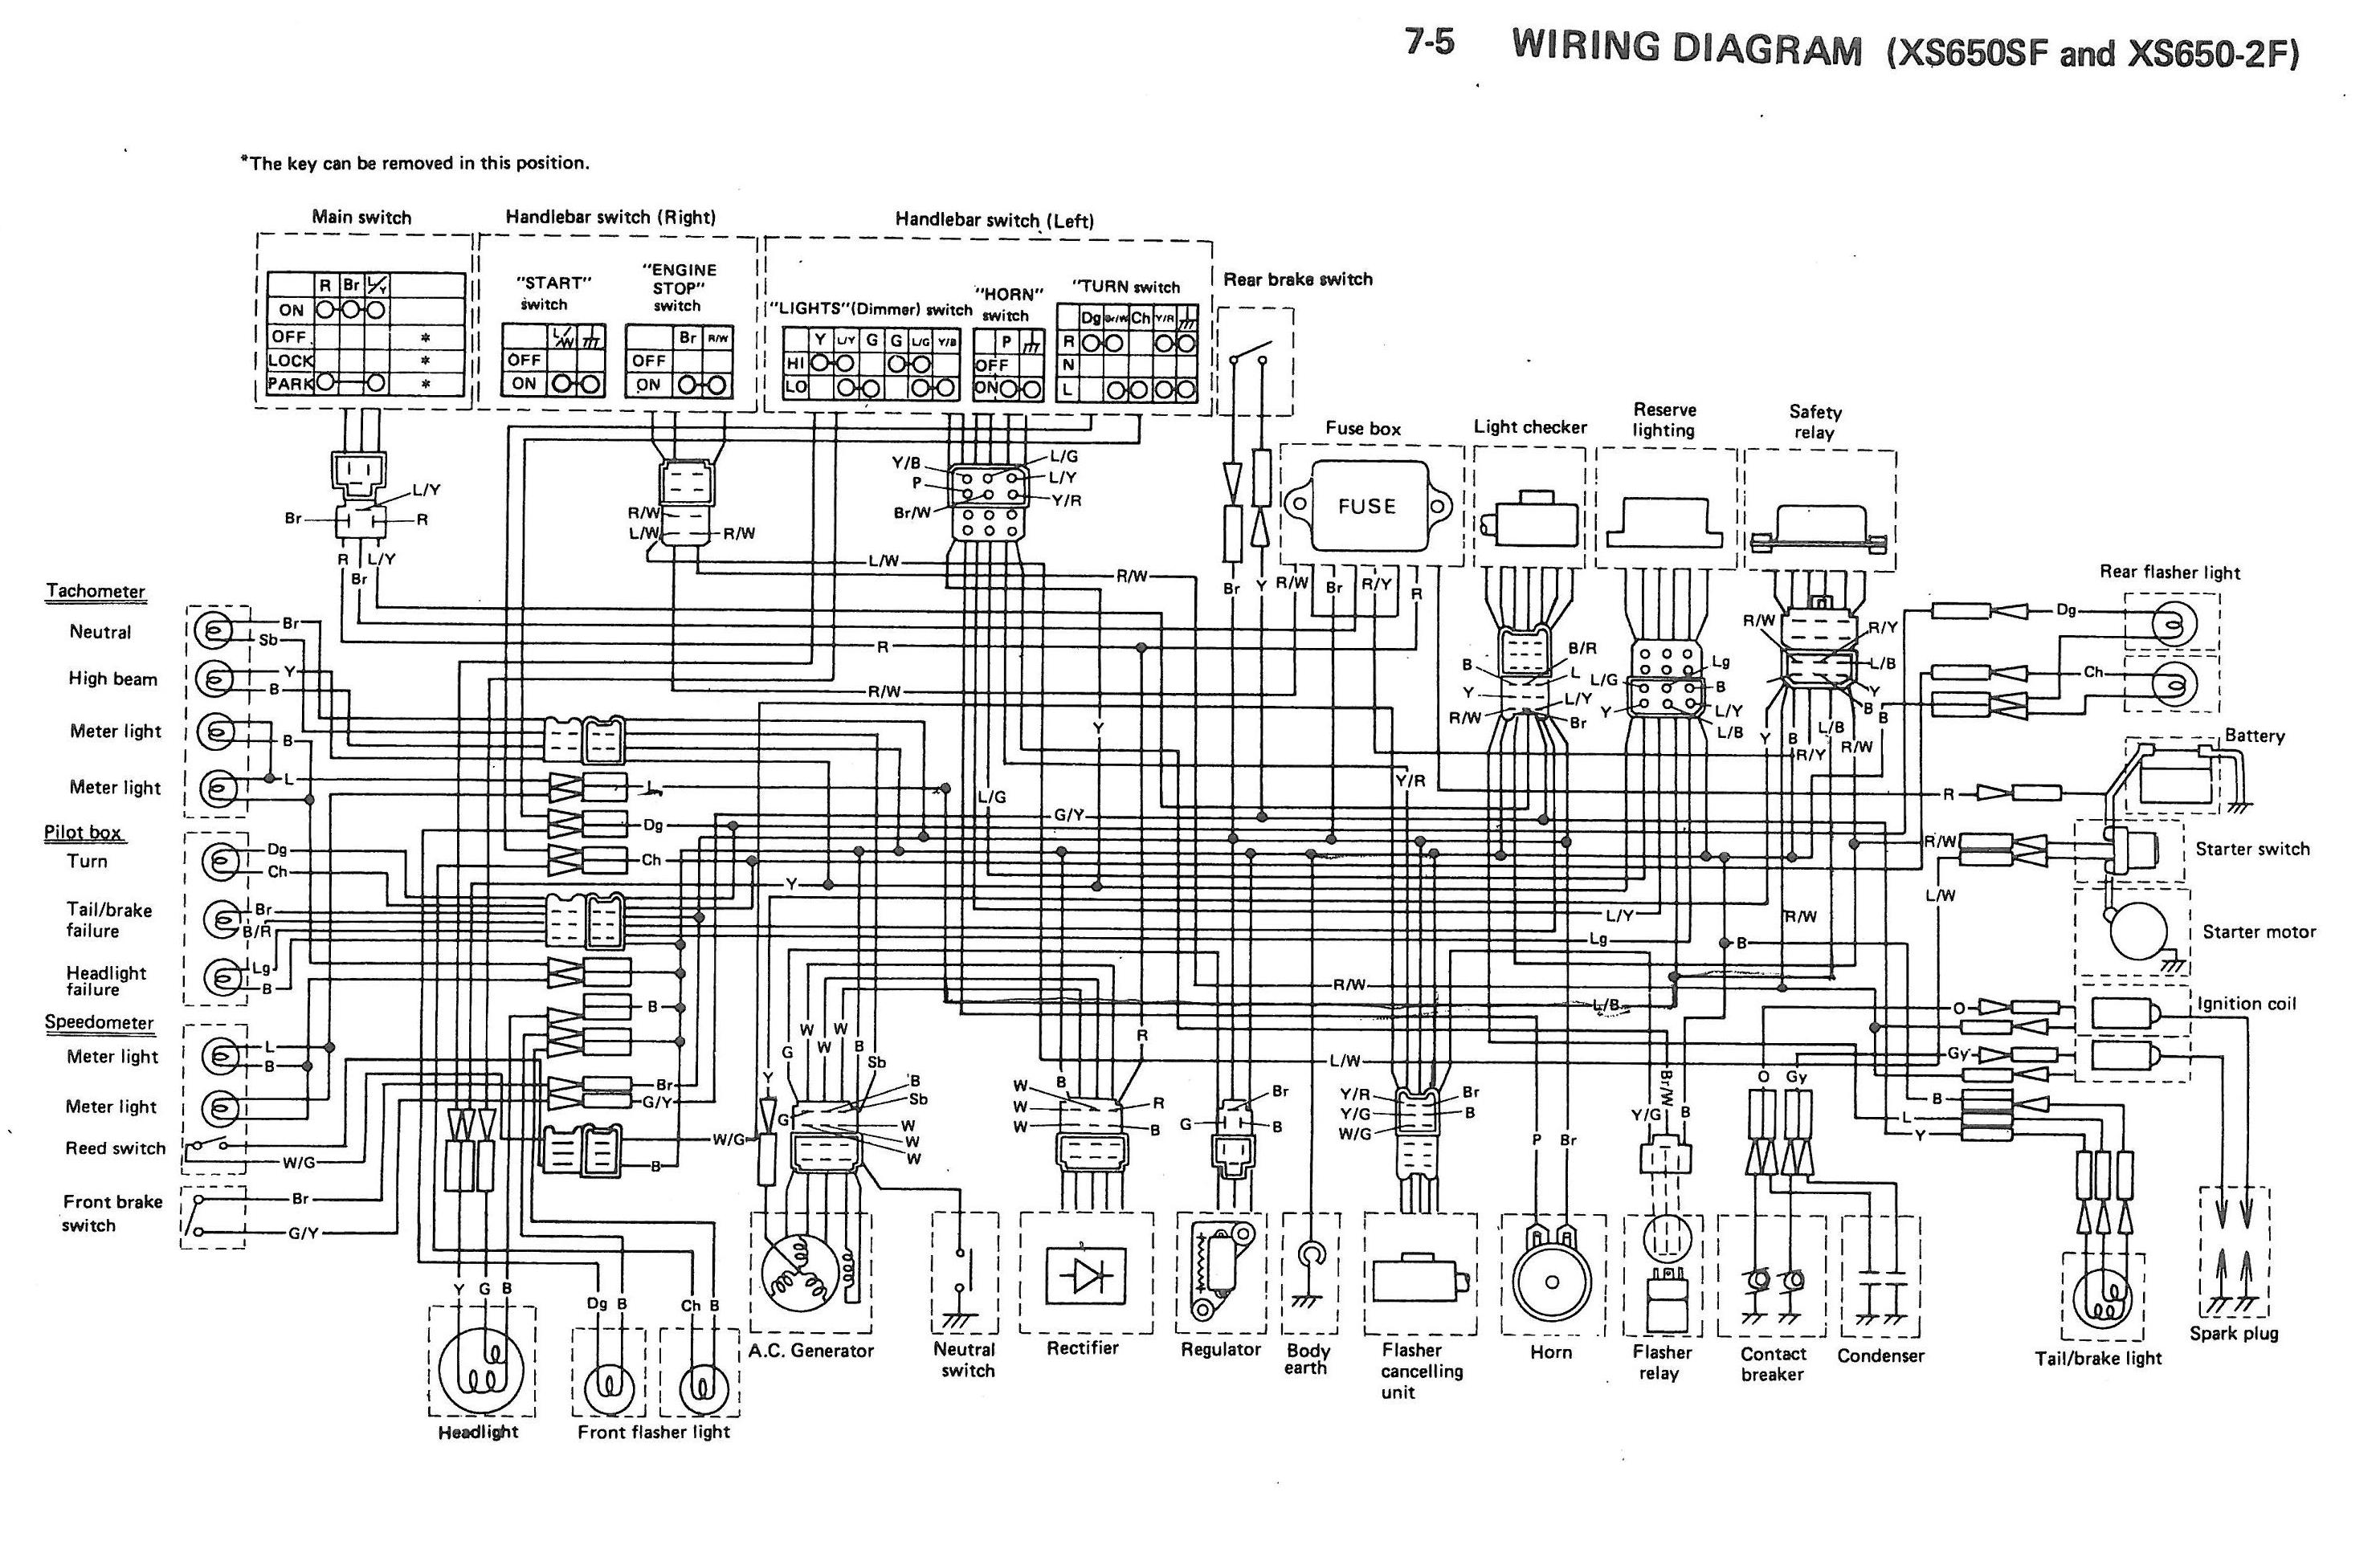 xs650: 79 xs650sf/2f wiring diagrams | thexscafe  thexscafe - wordpress.com